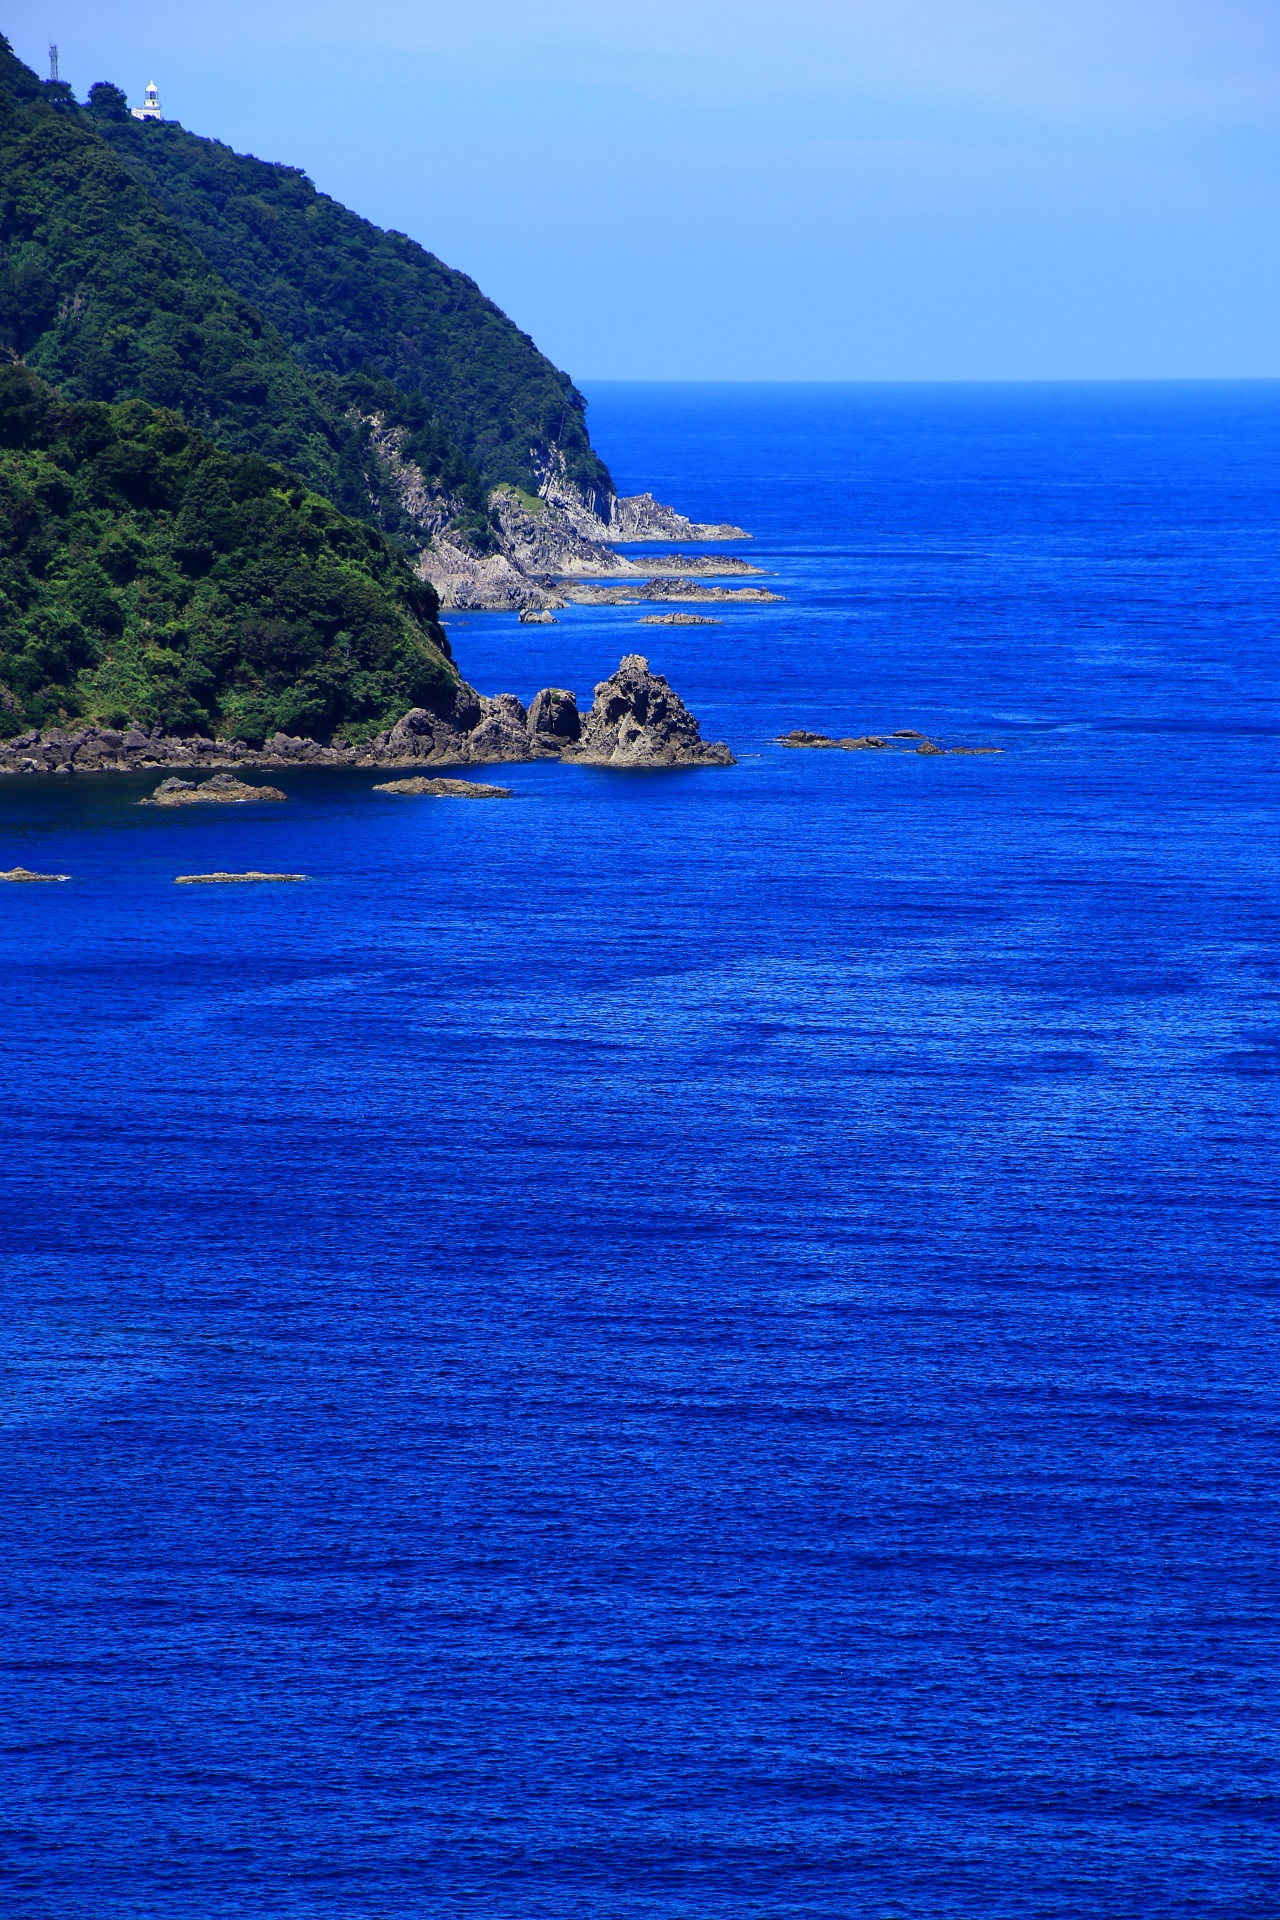 The blue sea and the blue sky of the Kamaya-kaigan coast in Kyoto